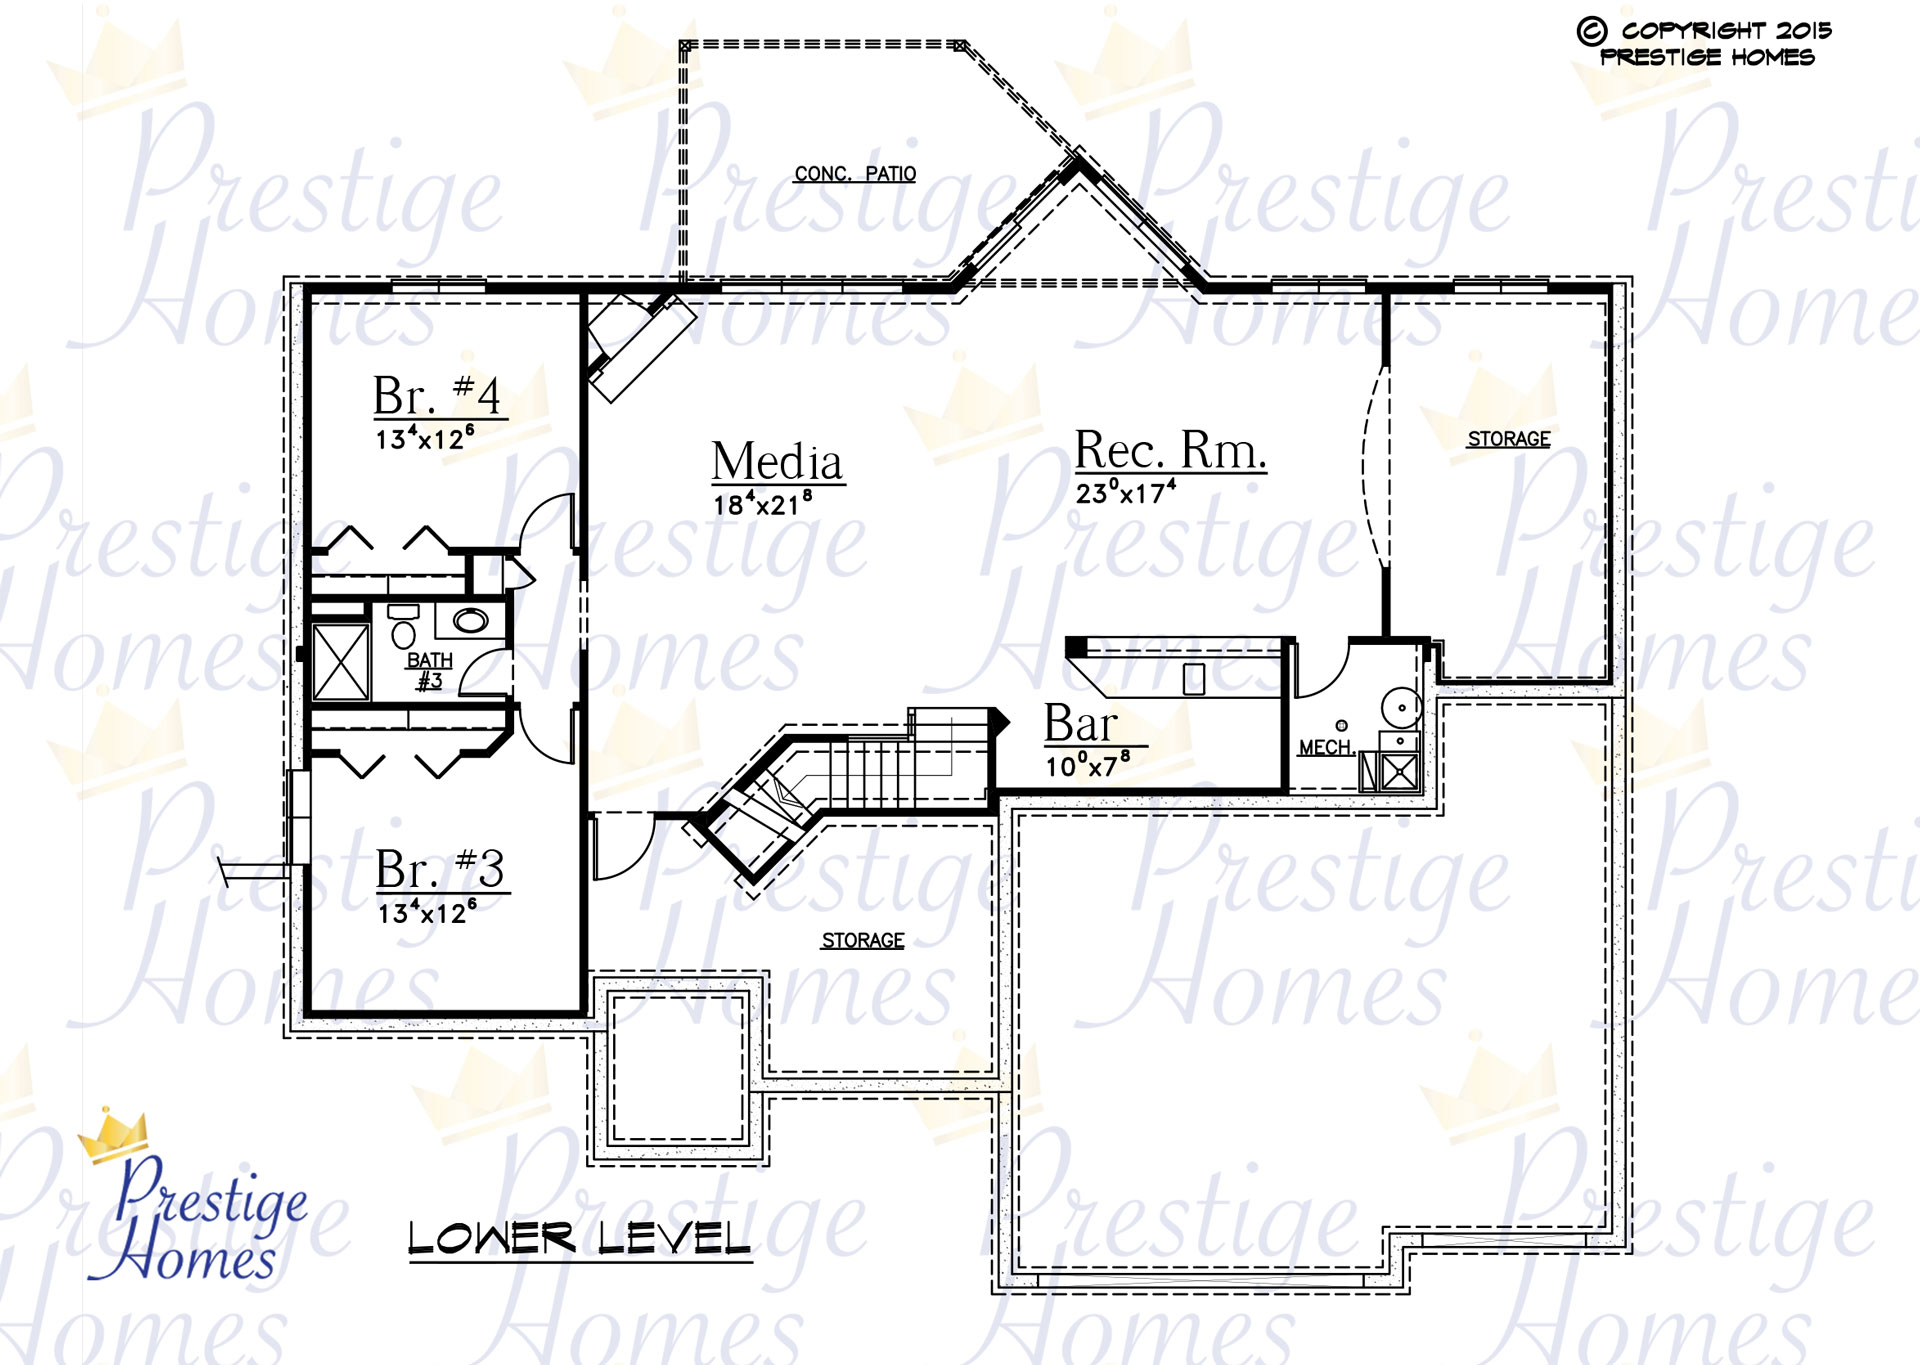 Prestige Homes - Floor Plan - Kelsey 2 Bed - Lower